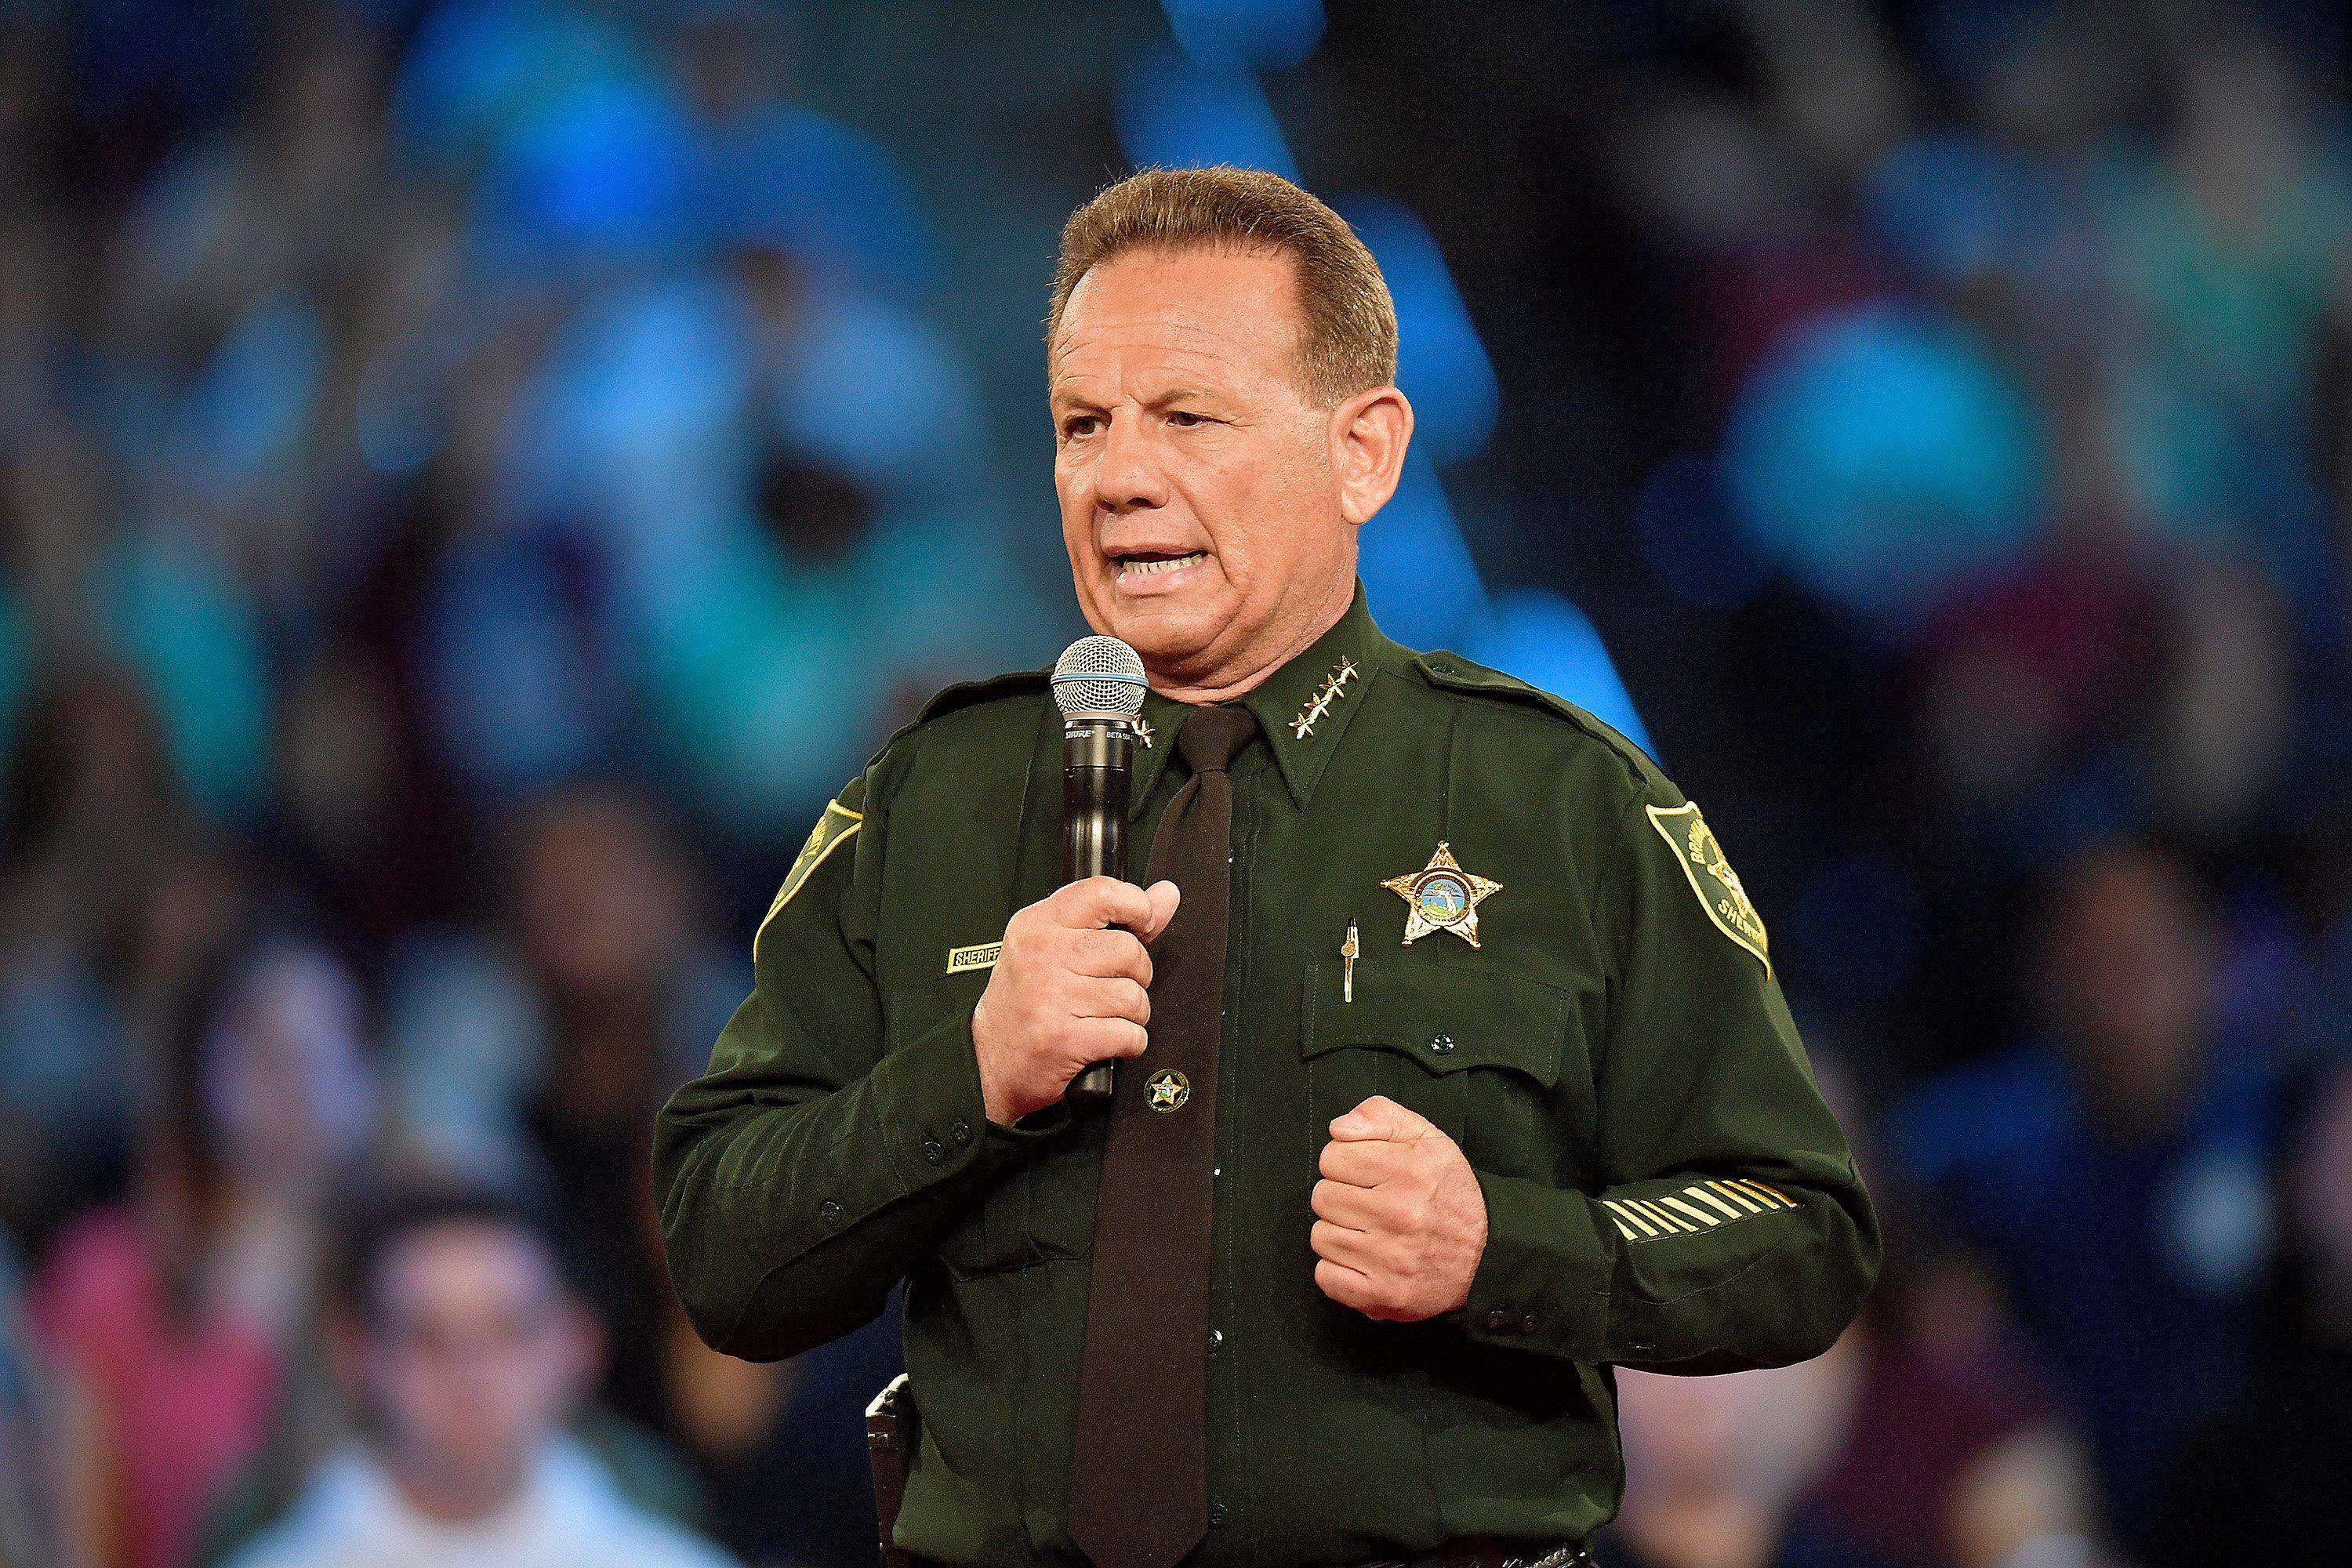 FL Governor DeSantis Suspends Sheriff Scott Israel Over Parkland School Massacre